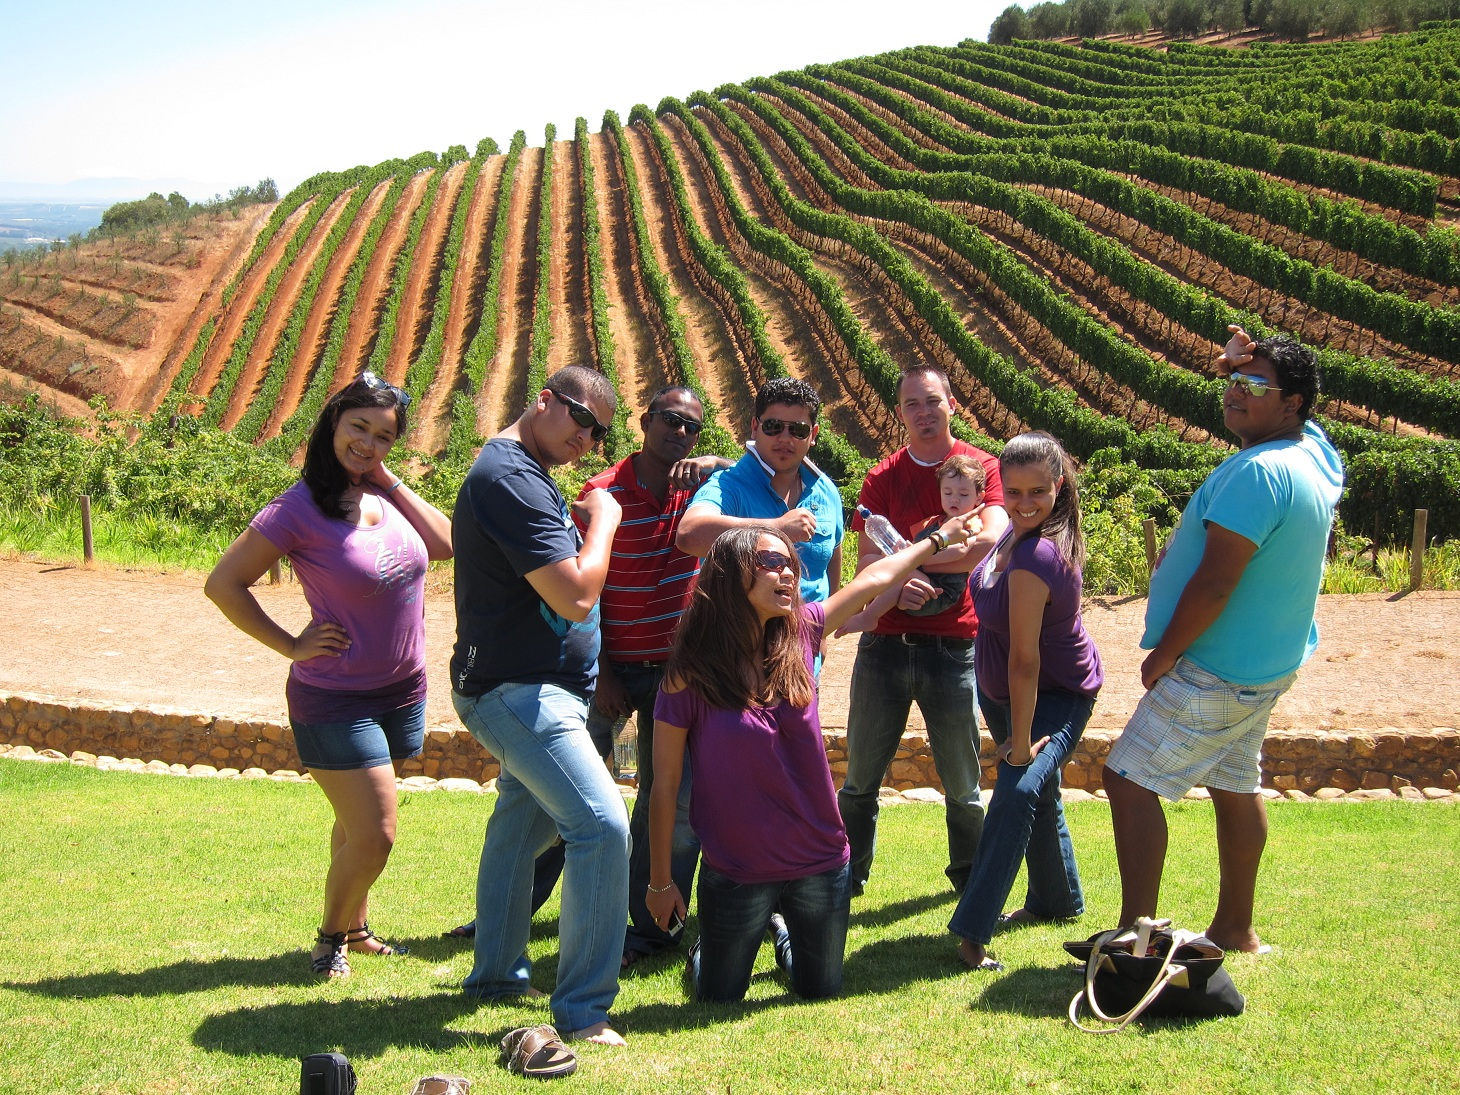 Tokara Wine Estate in Stellenbosch.: www.southafrica.to/transport/Busses/Bettina-Shuttle/Bettina-Shuttle...